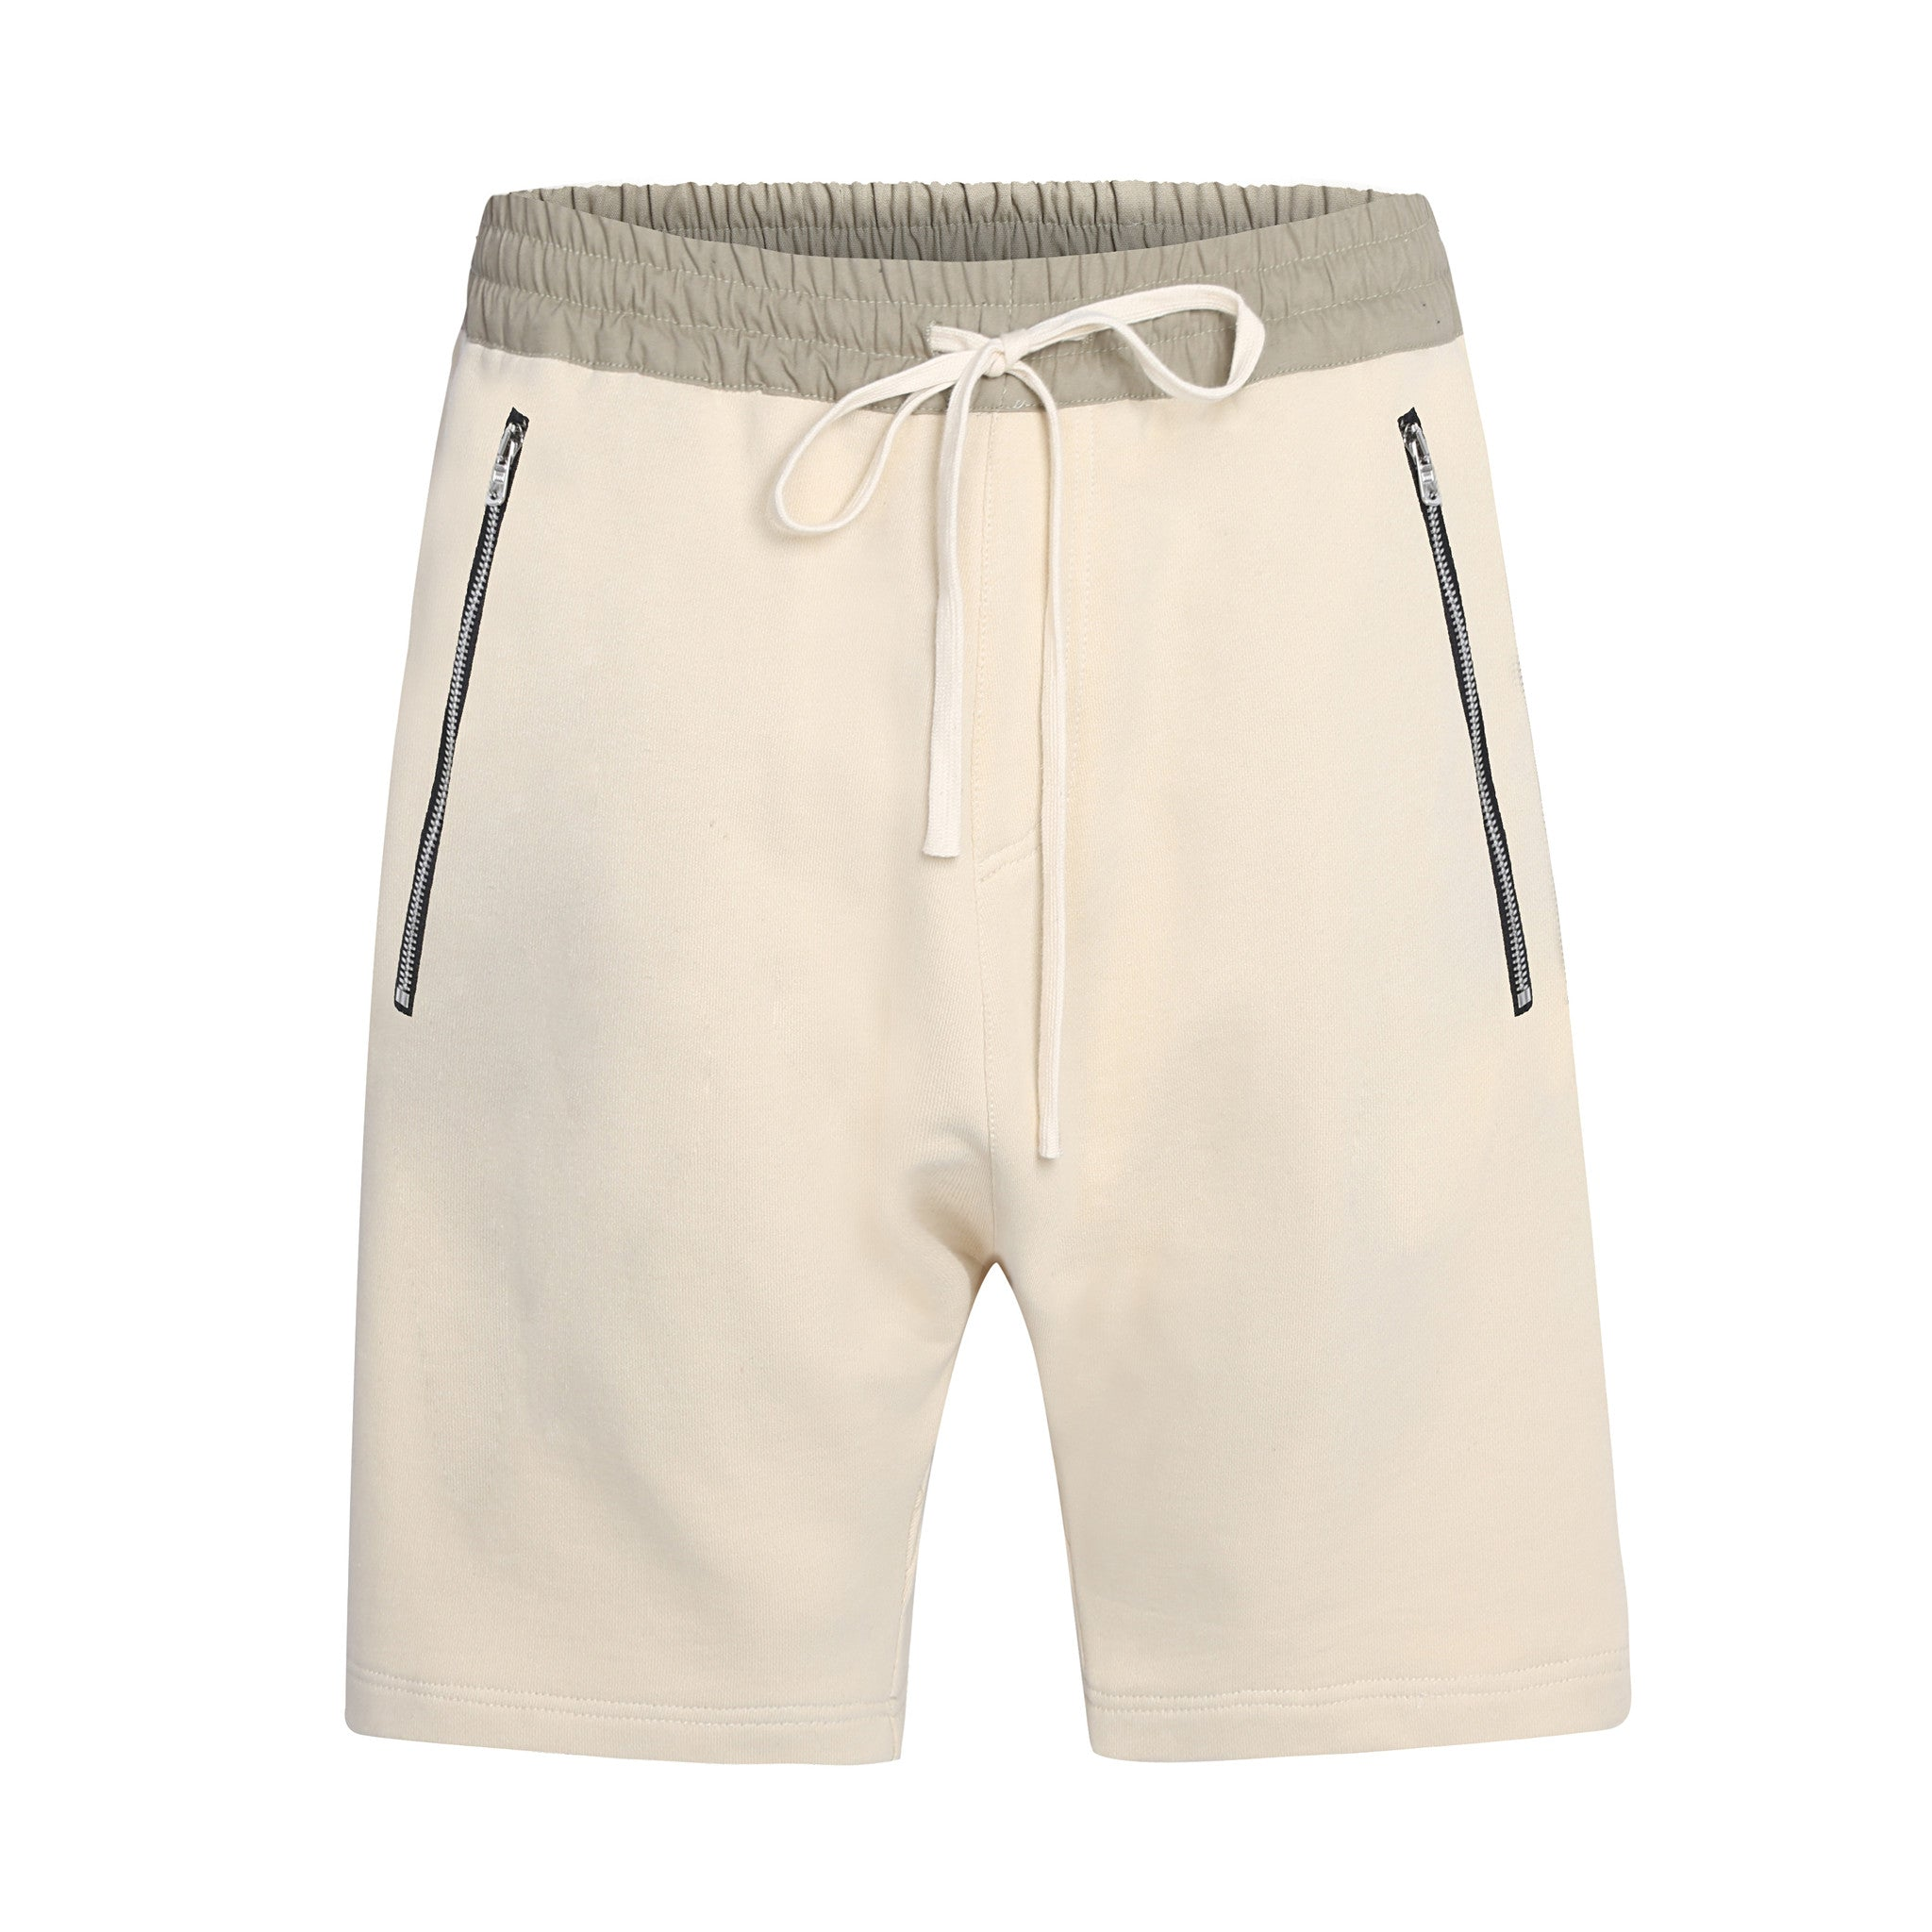 DRAWSTRING SHORTS KHAKI